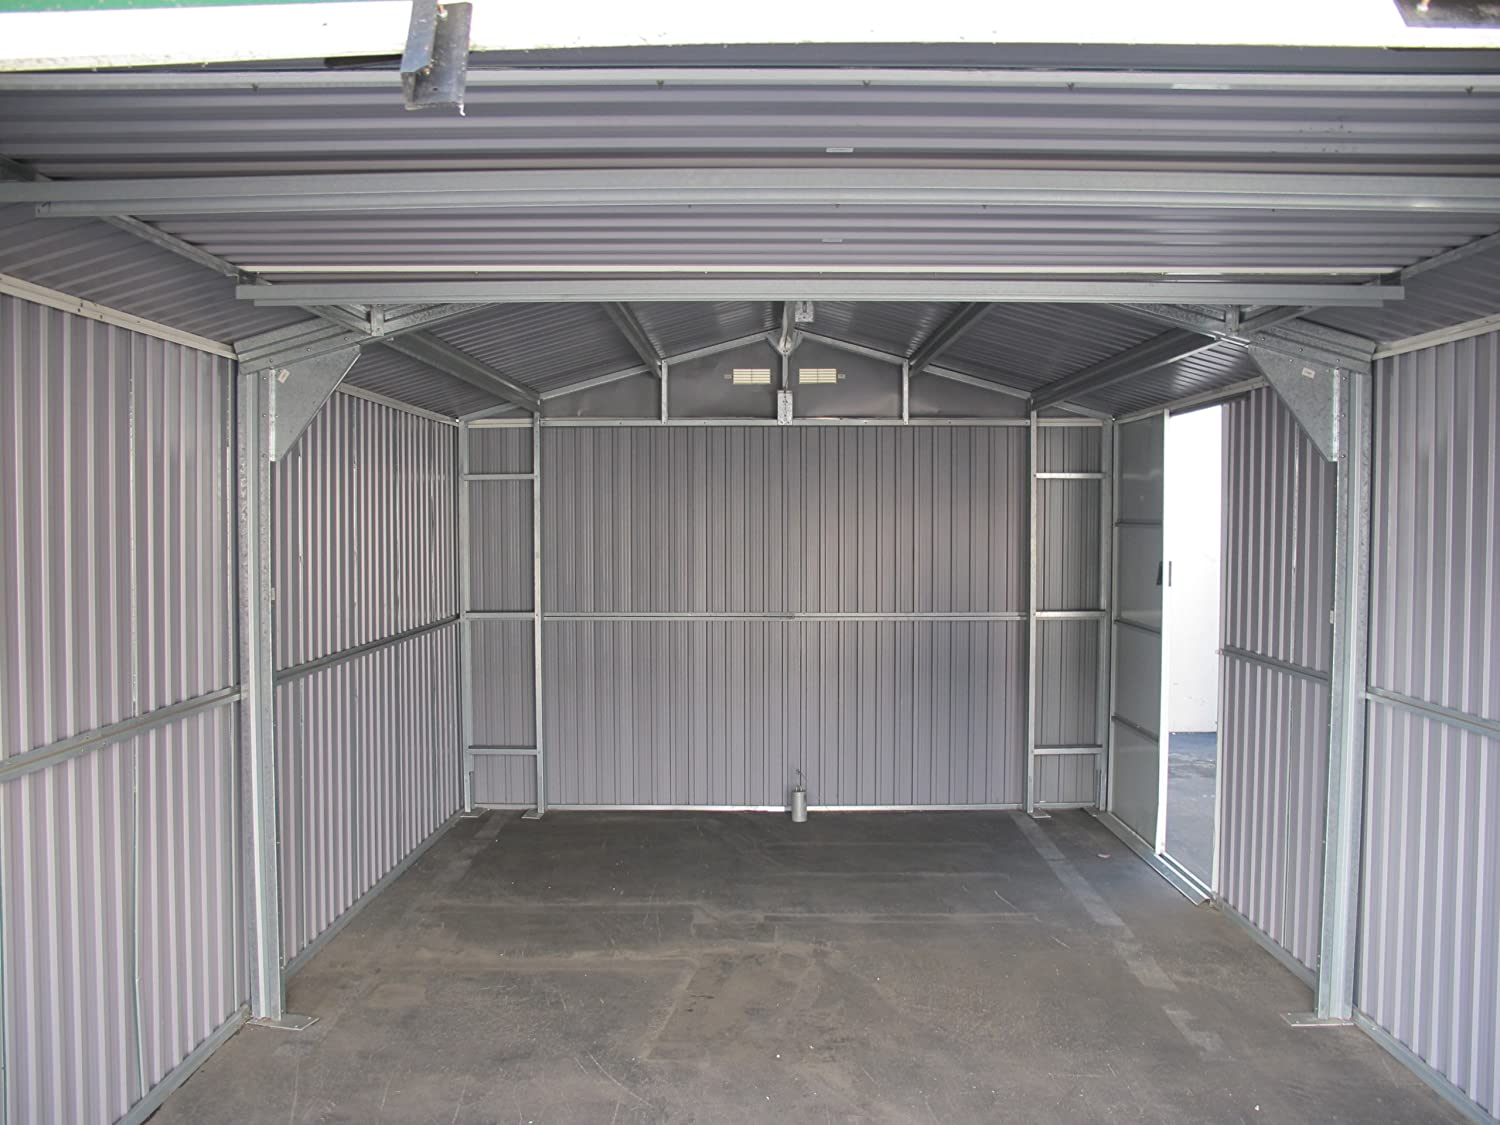 Amazon.com  Duramax 50961 Metal Garage Shed with Side Door 12 by 20-Feet  Storage Sheds  Garden u0026 Outdoor & Amazon.com : Duramax 50961 Metal Garage Shed with Side Door 12 by ...